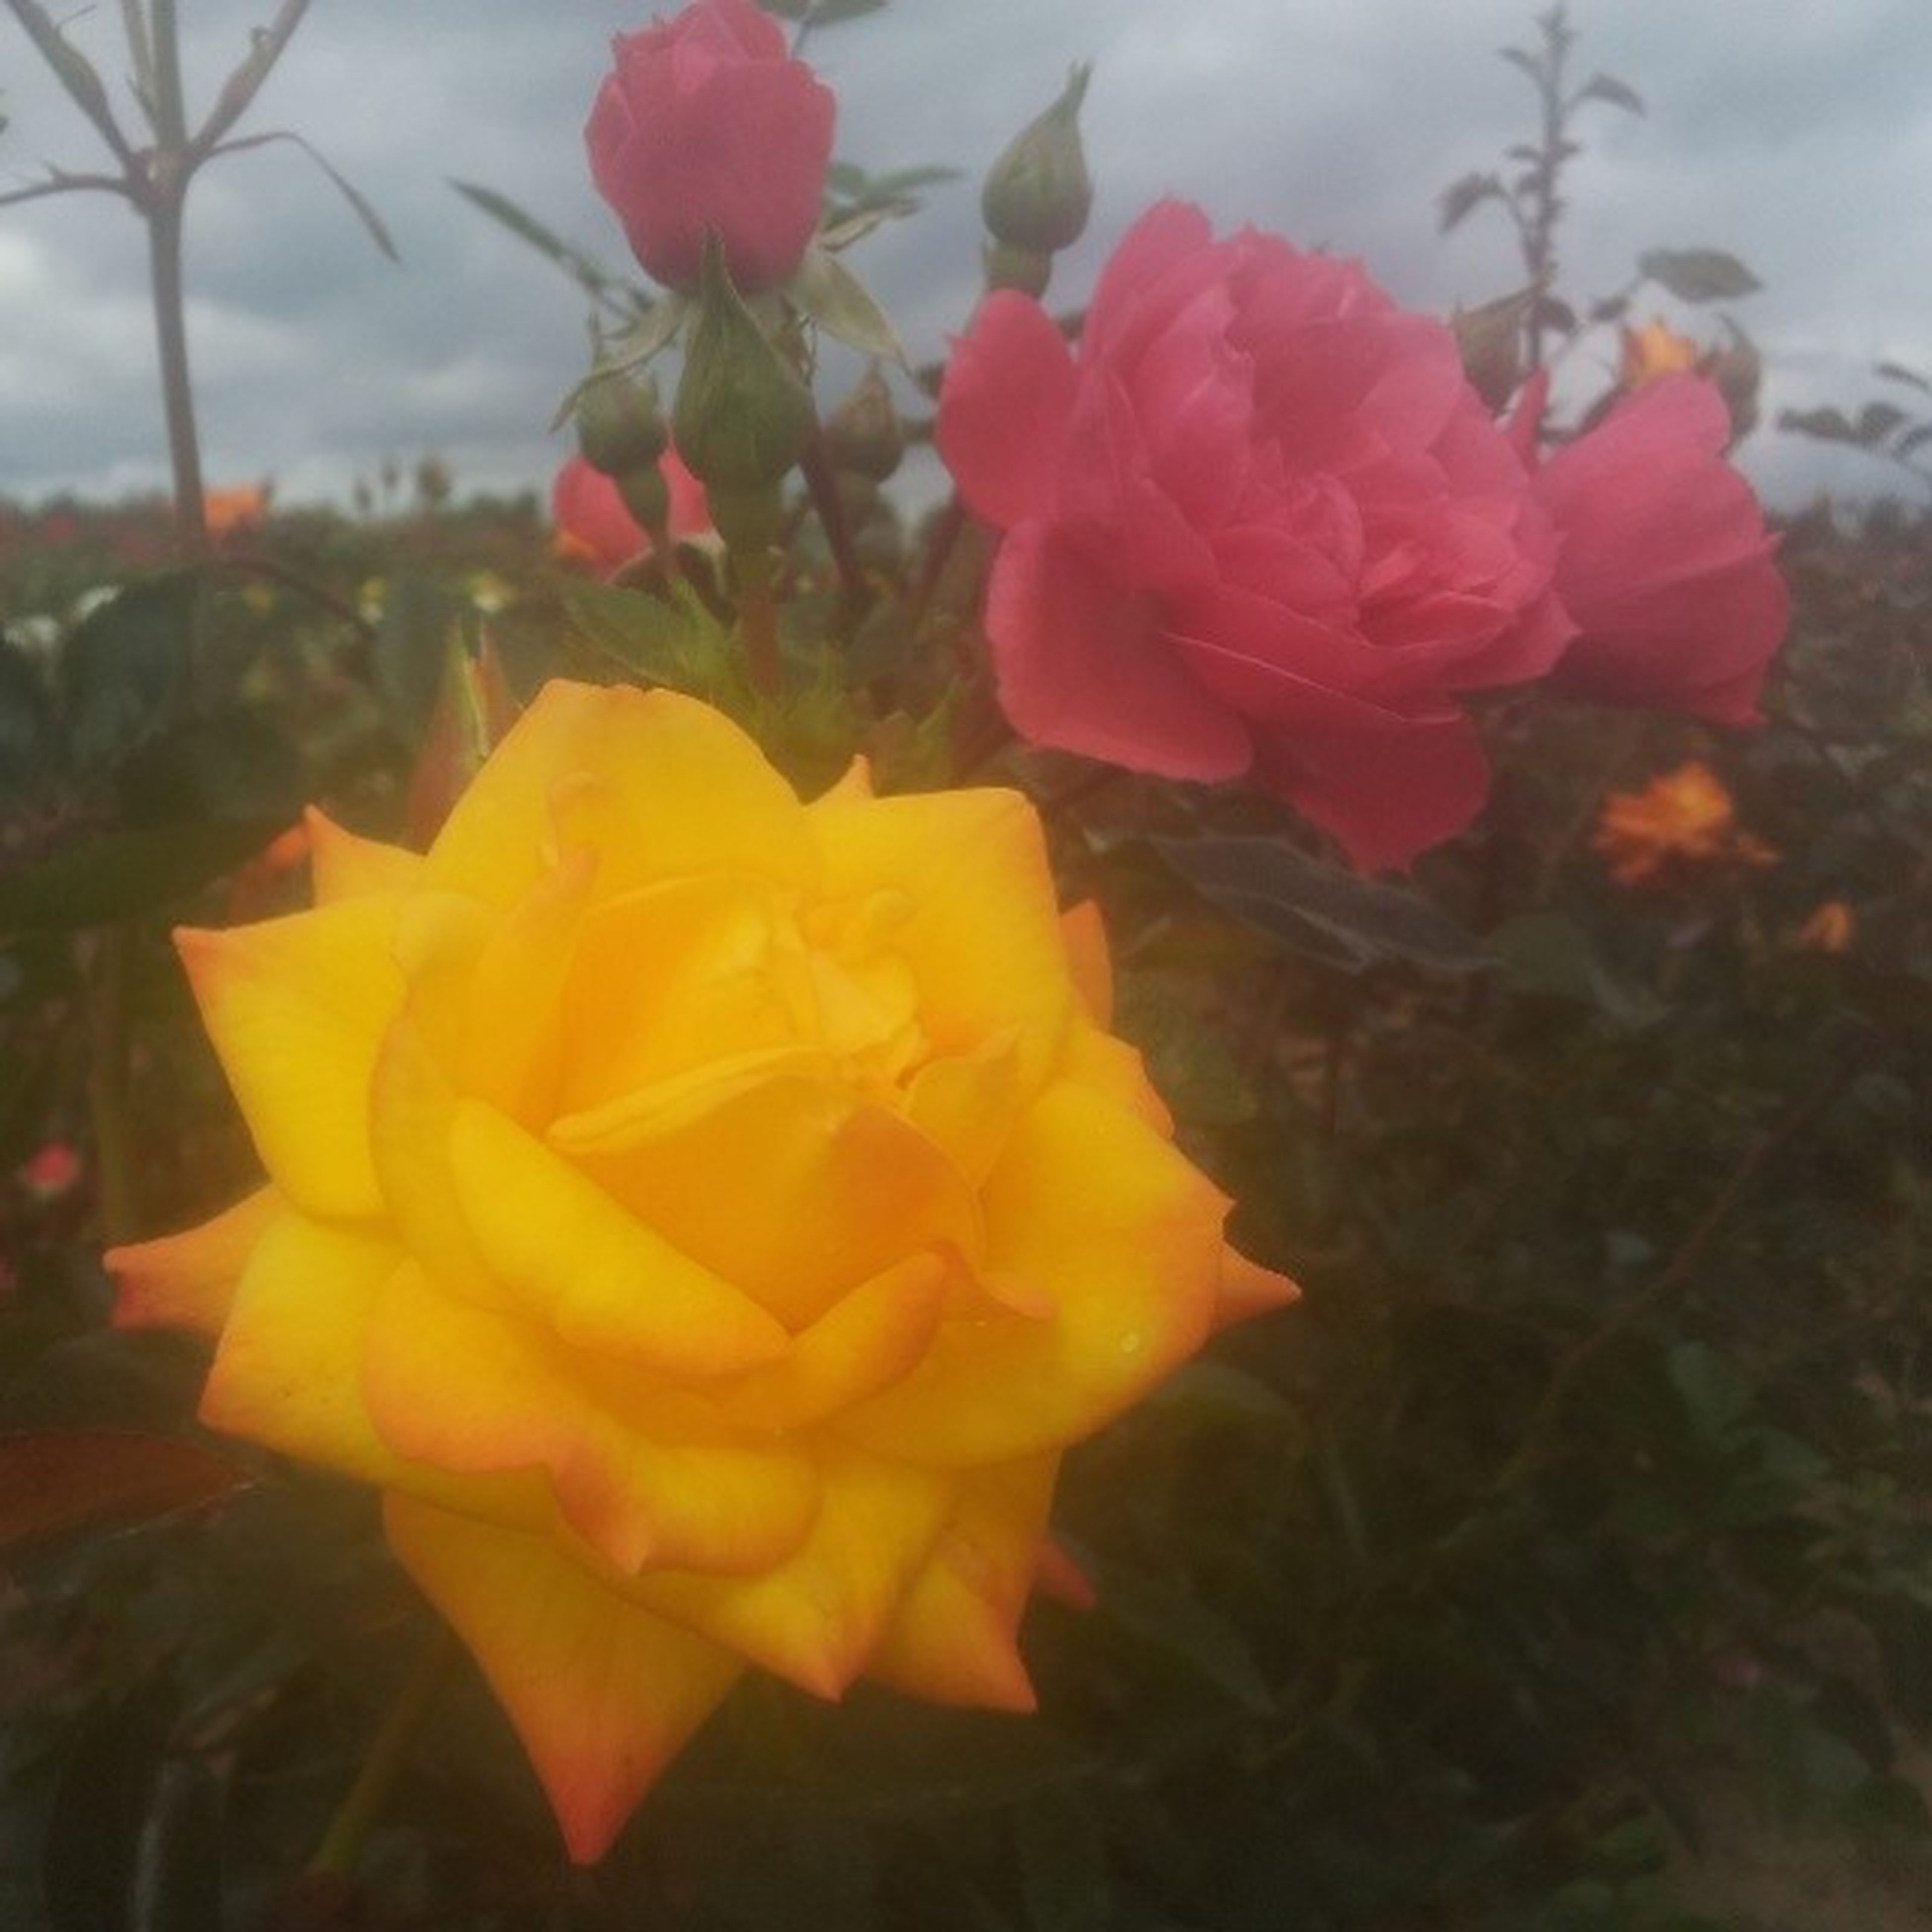 flower, petal, fragility, freshness, flower head, beauty in nature, growth, blooming, focus on foreground, close-up, rose - flower, plant, nature, in bloom, yellow, blossom, single flower, leaf, park - man made space, day